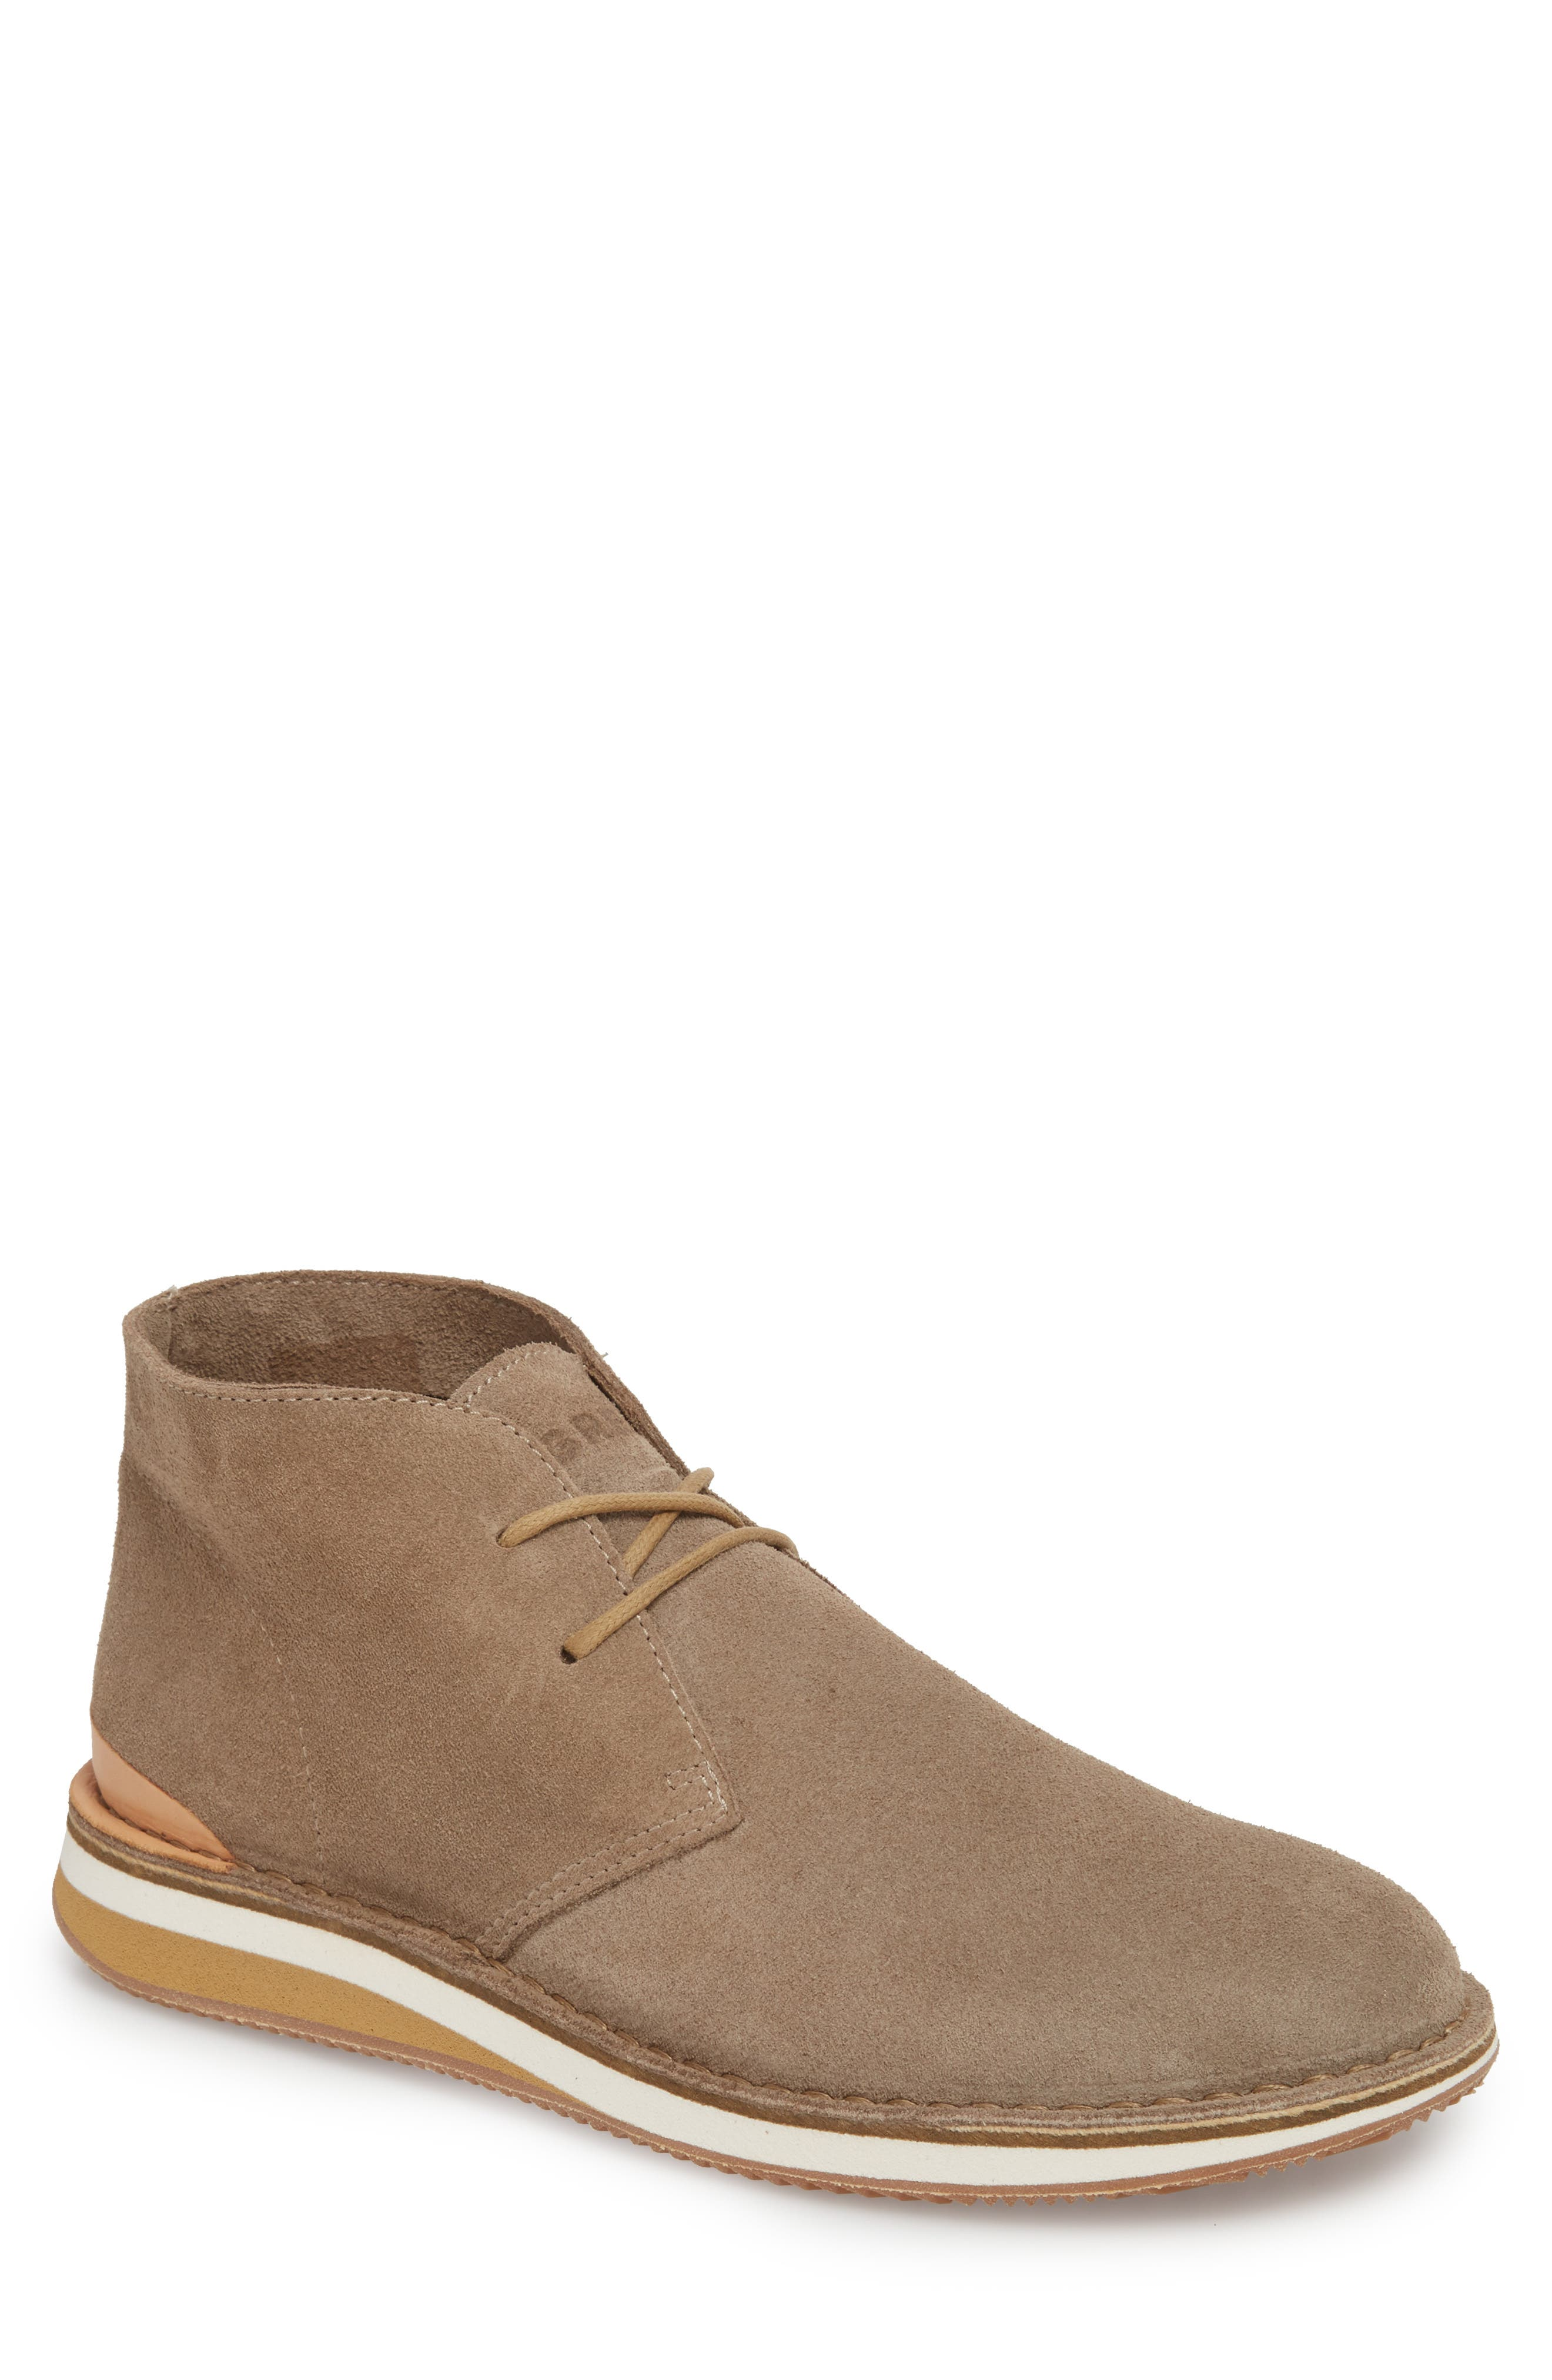 Hirsh Chukka Boot,                             Main thumbnail 1, color,                             271